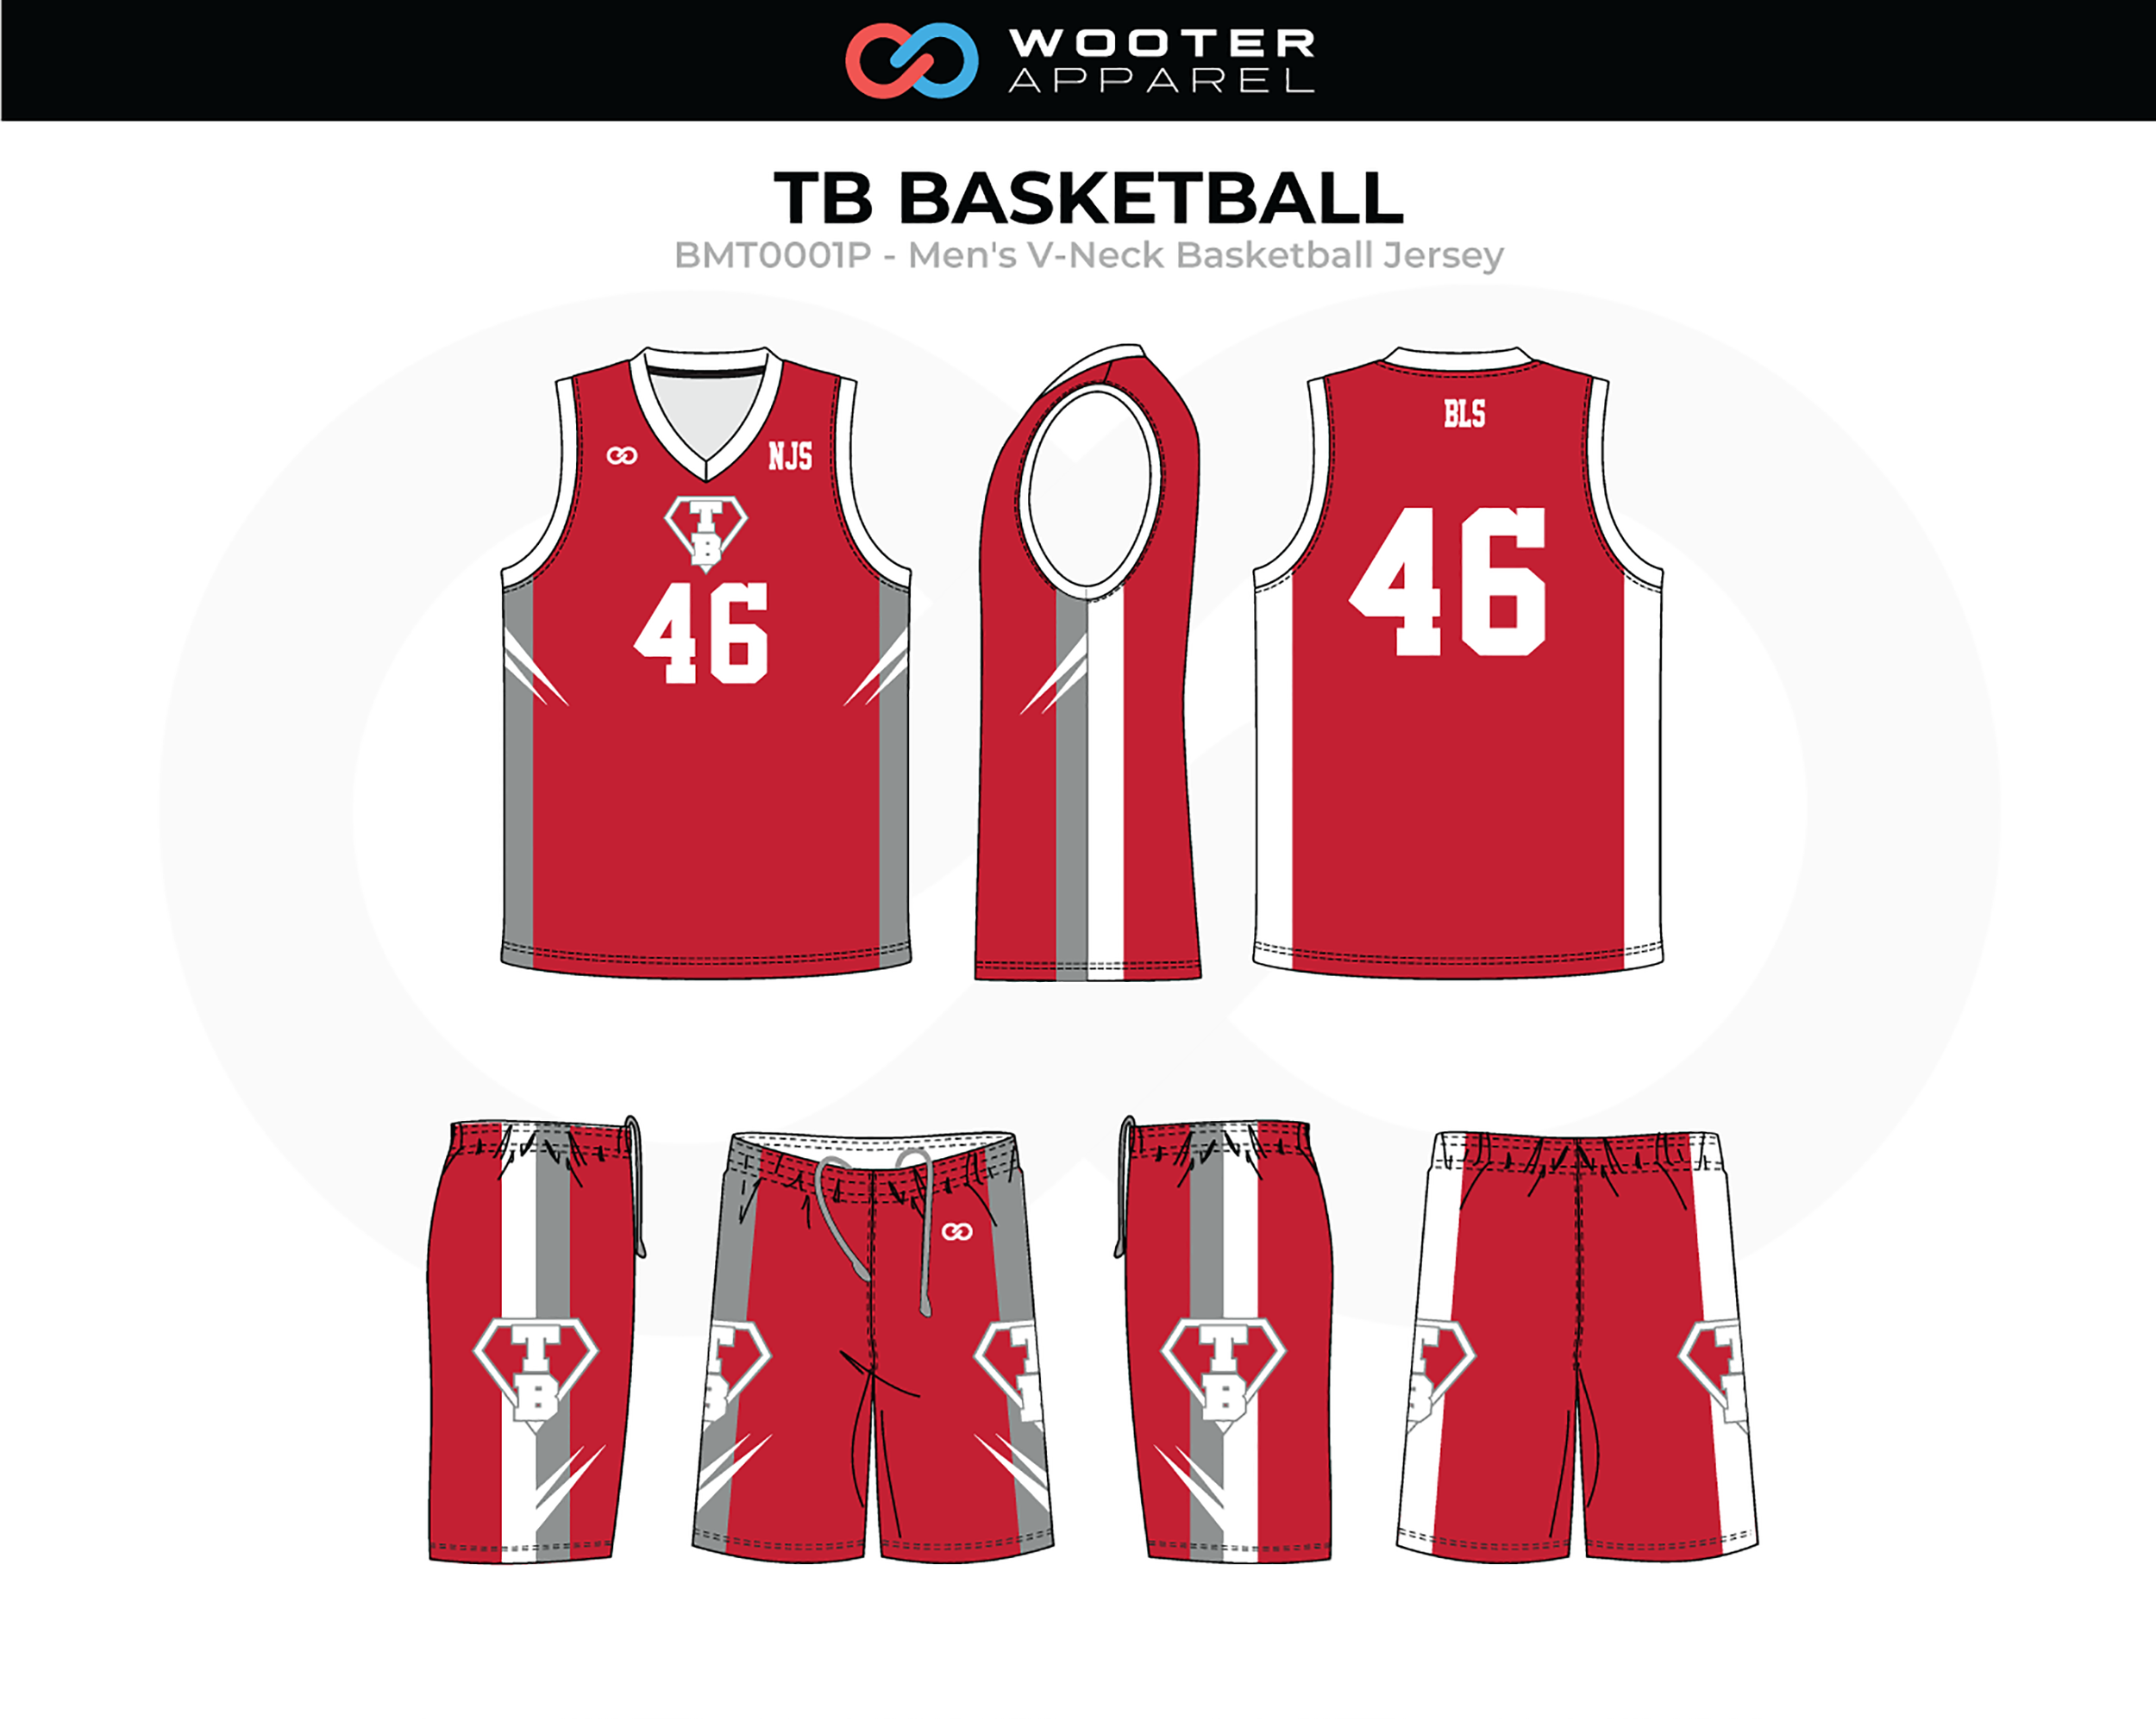 TB Red White Gray Men's V-Neck Basketball Uniform, Jersey and Shorts